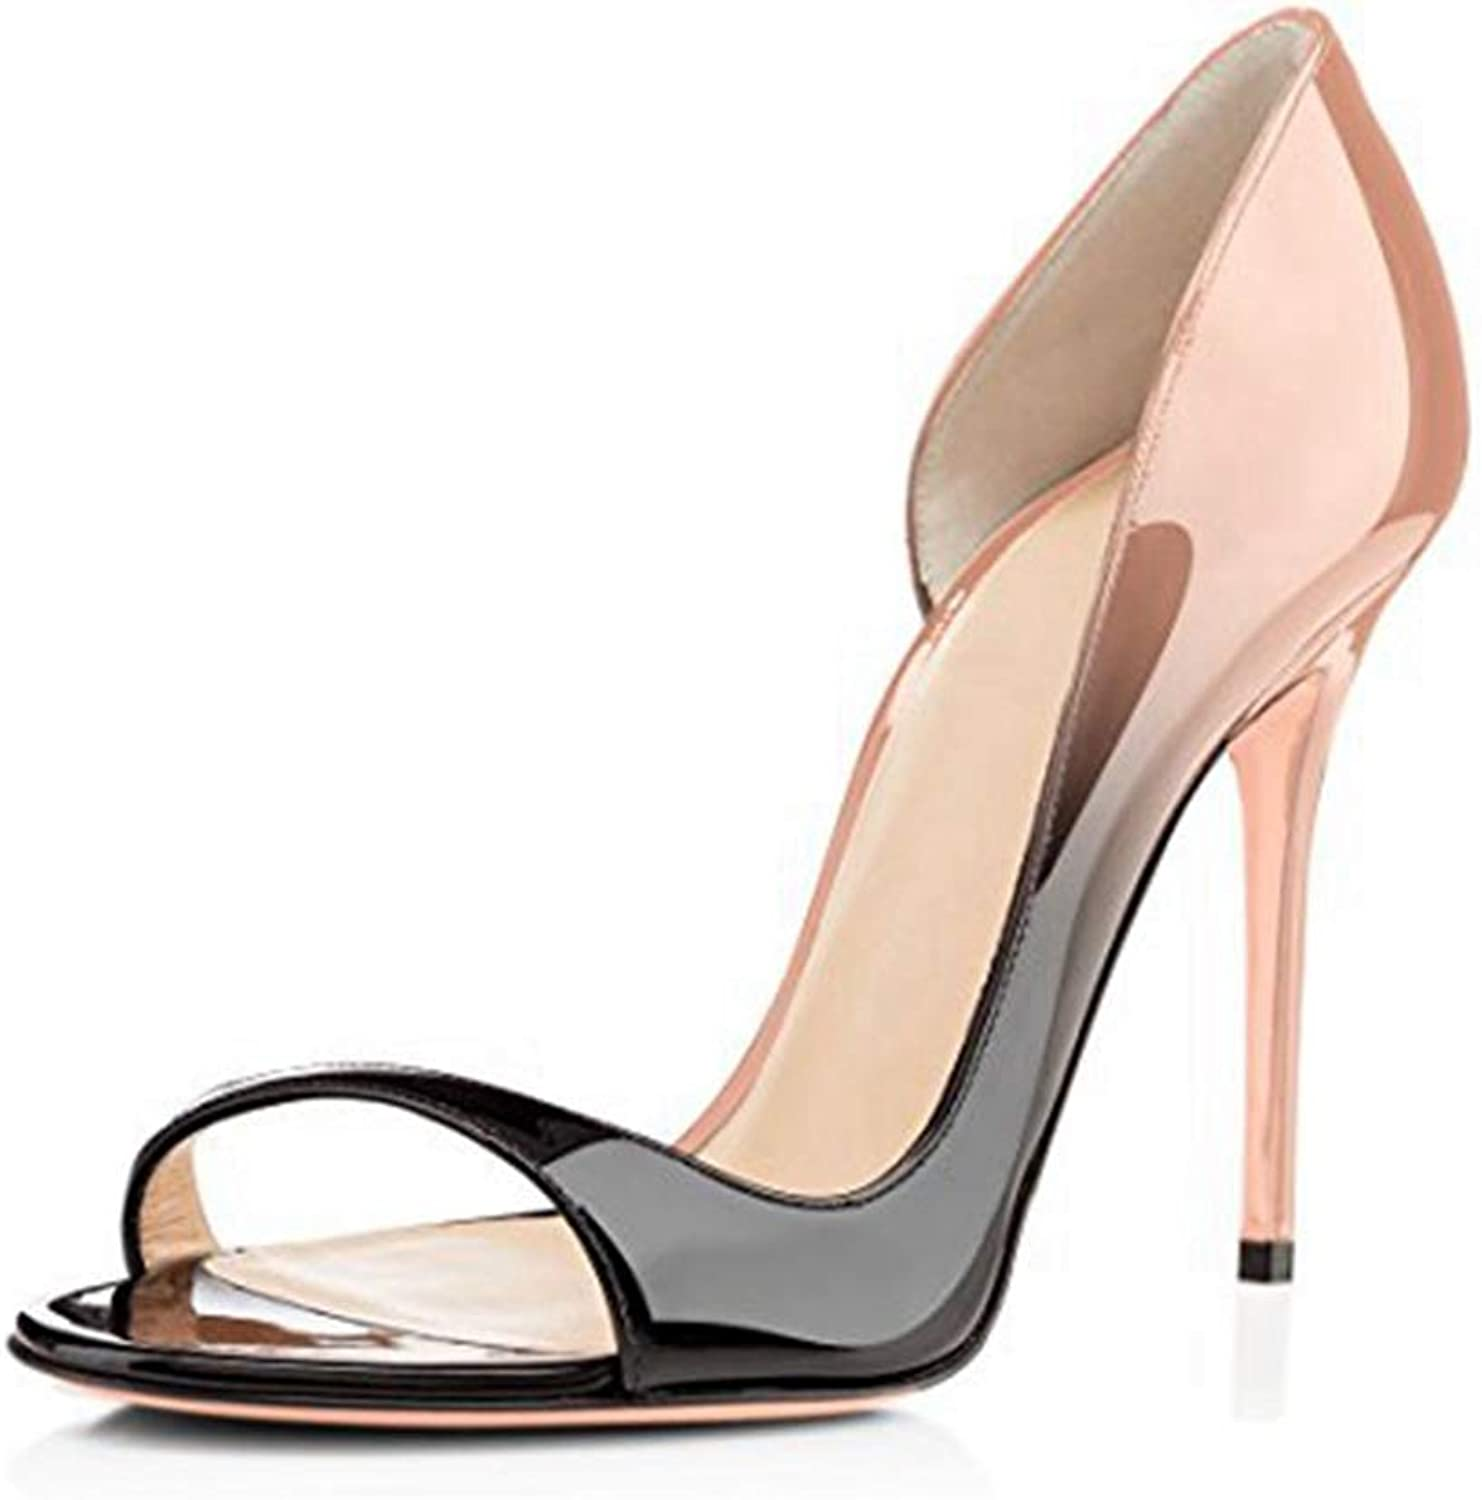 Elegant Sandal for Women Slip-on Black Nude shoes Ladies Patent Leather Heeled Sandals